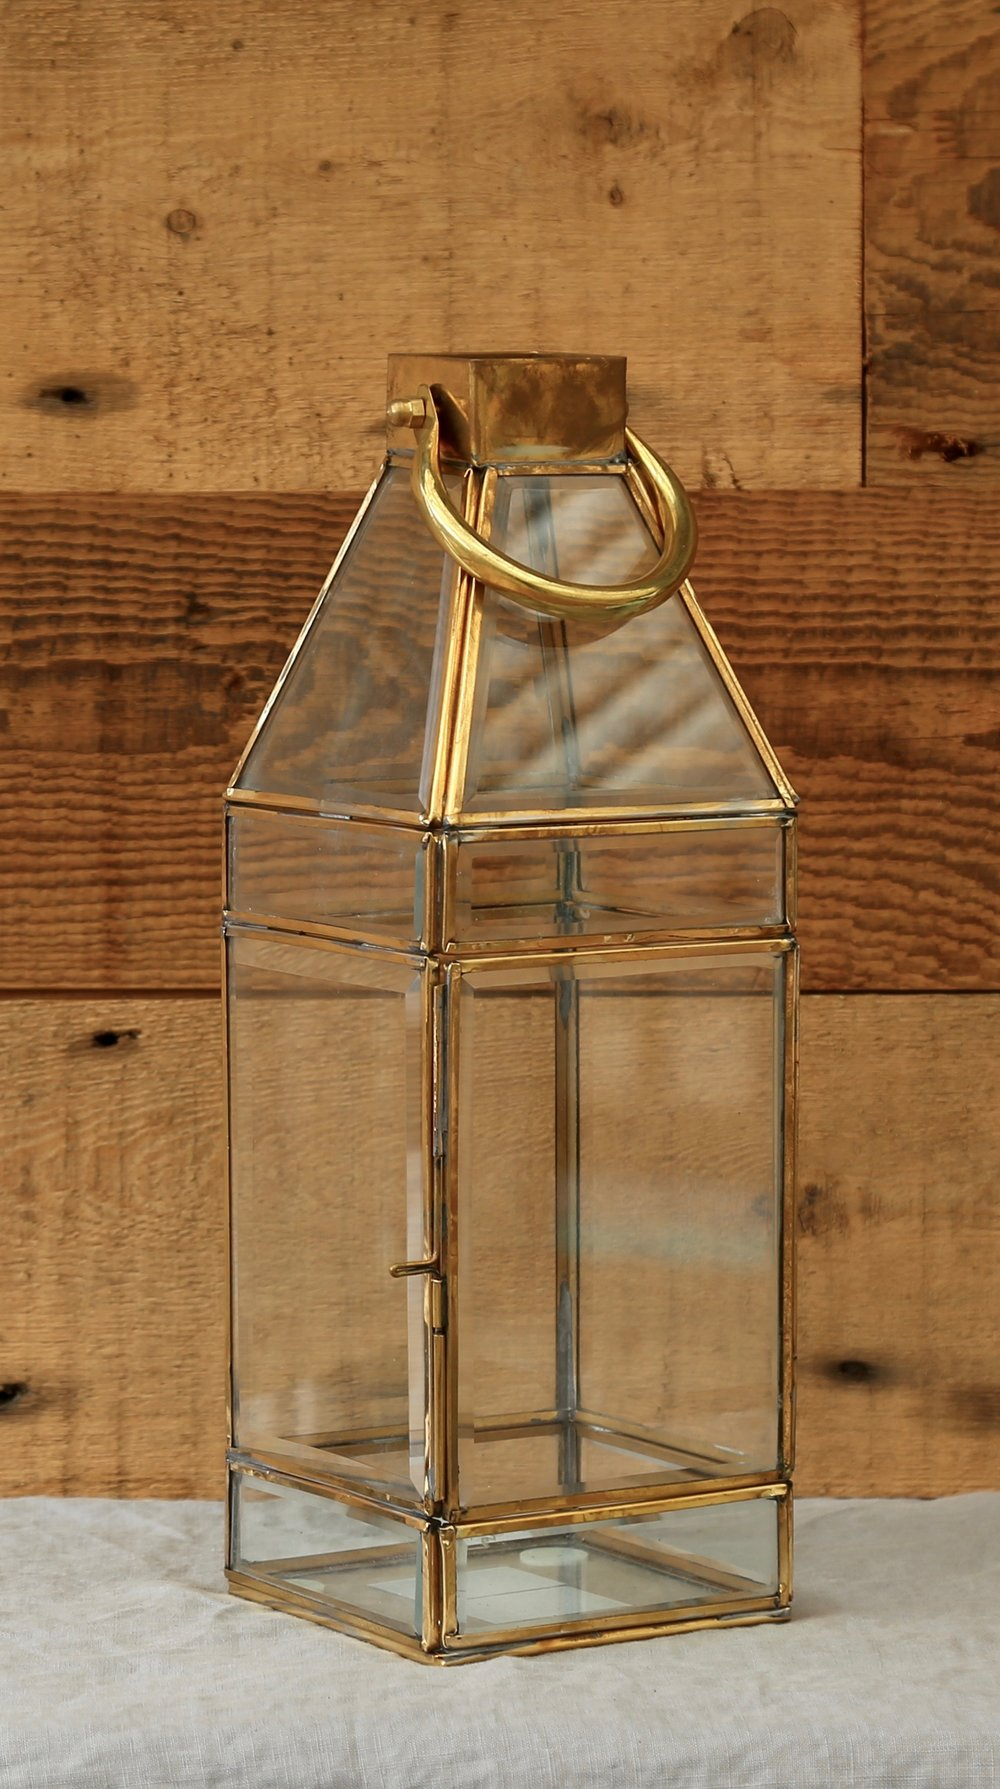 Glass Lantern - Midsize